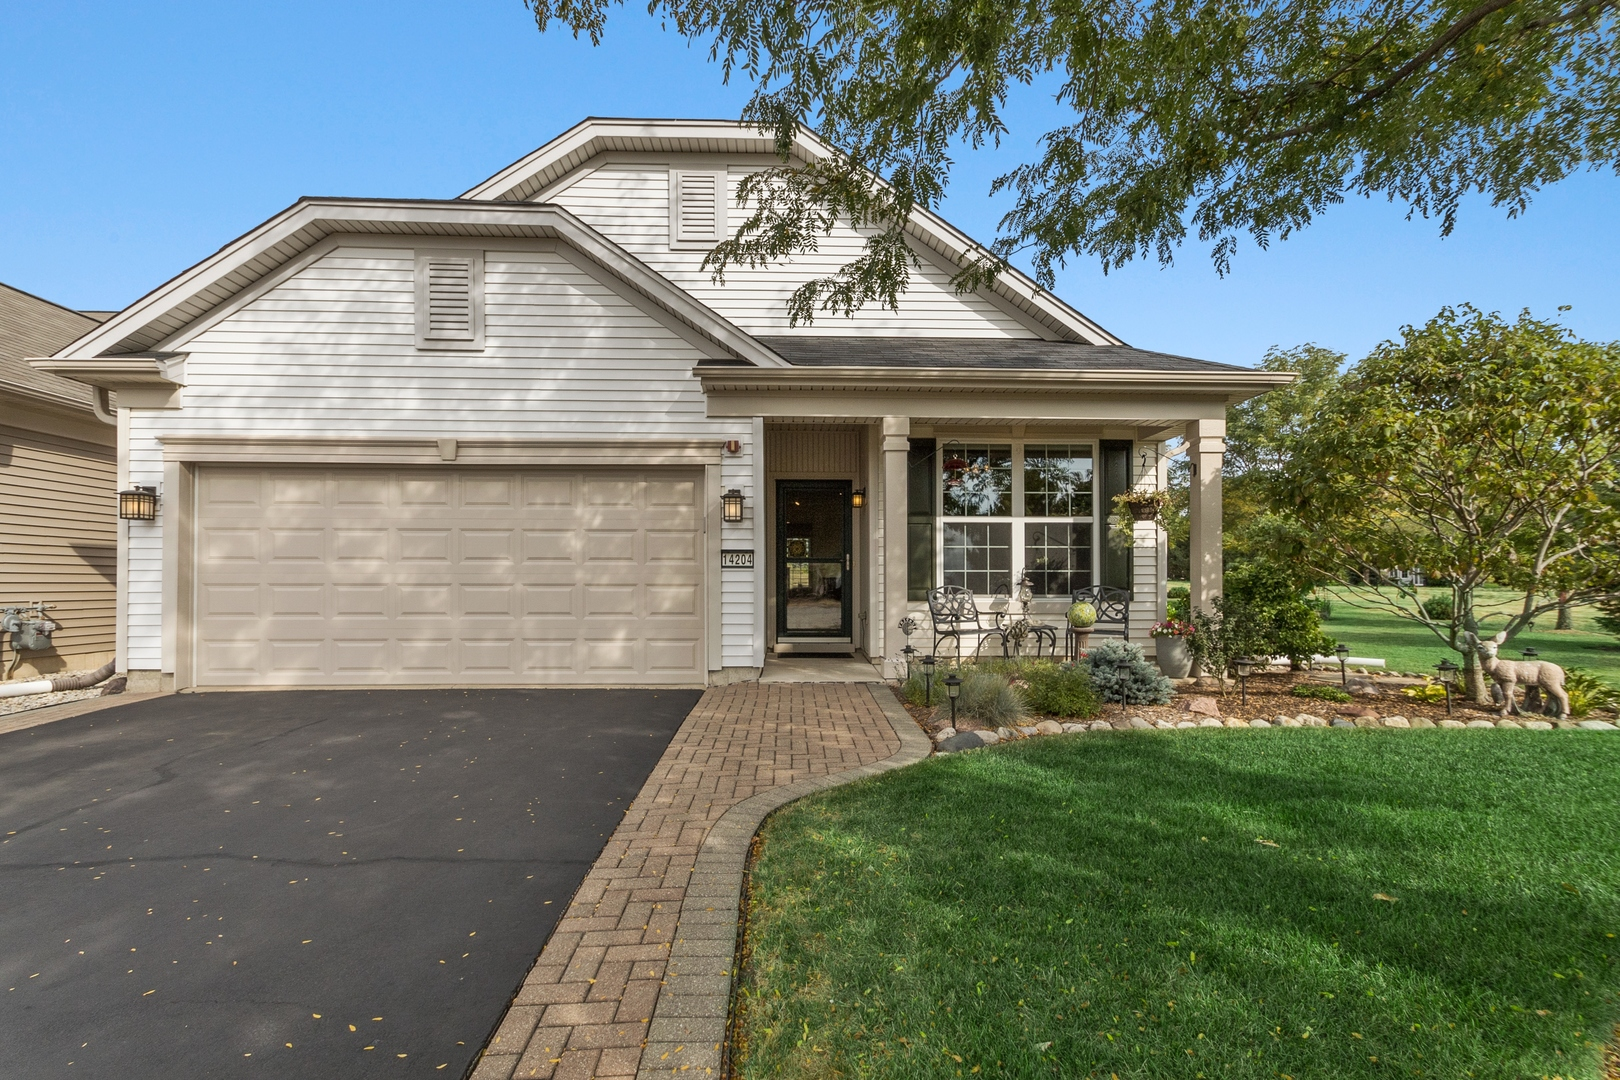 Photo for 14204 Flagstaff Court, Huntley, IL 60142 (MLS # 10844965)